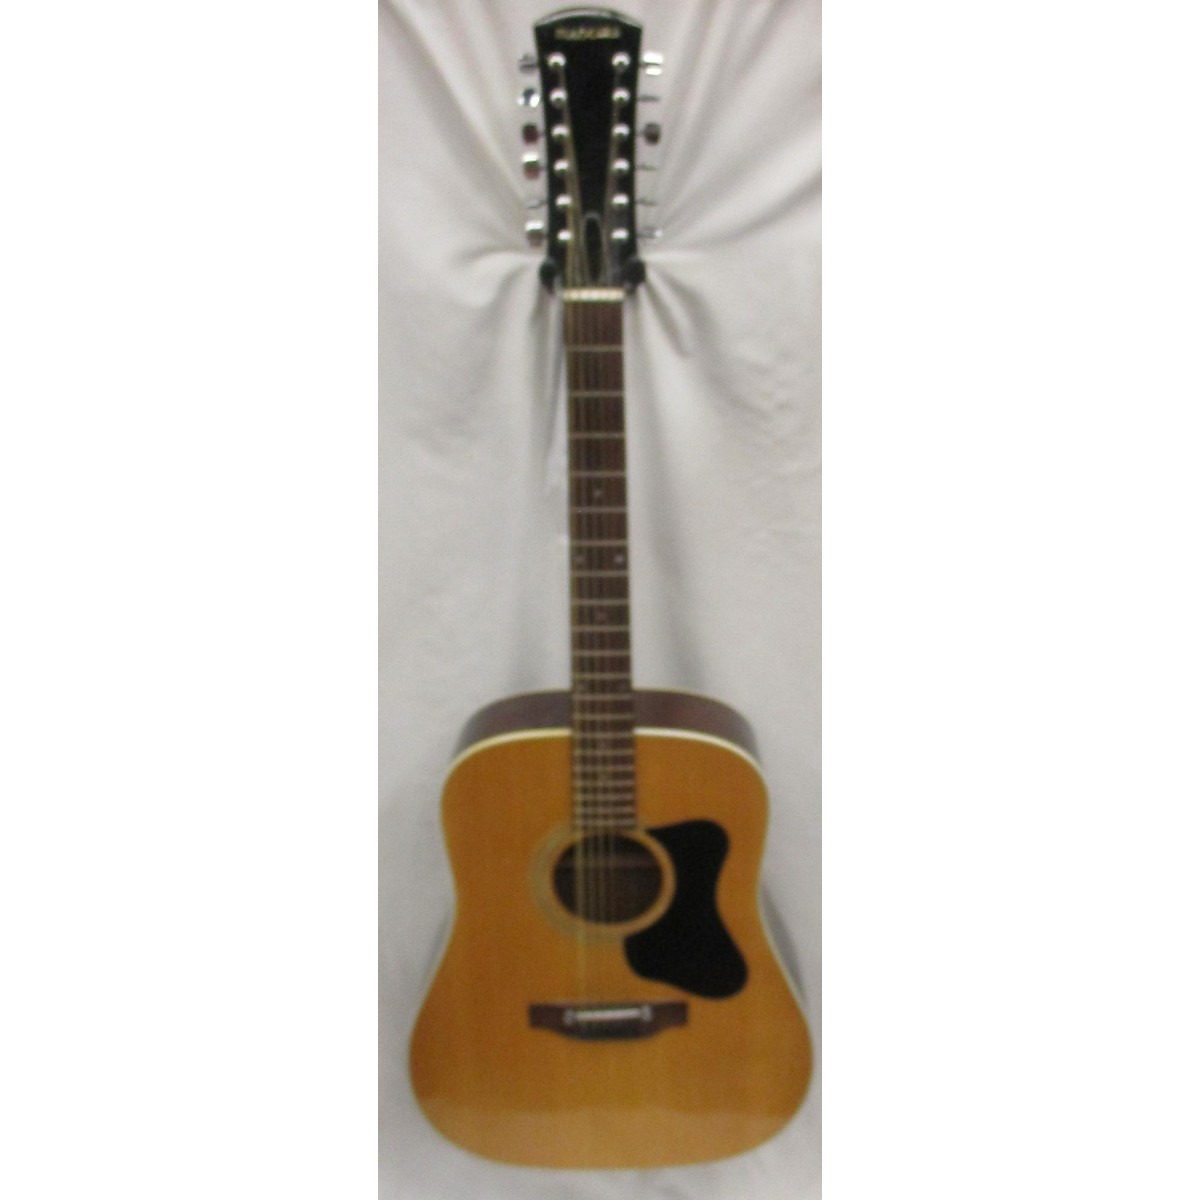 Guild Madeira A12 12 String Acoustic Guitar